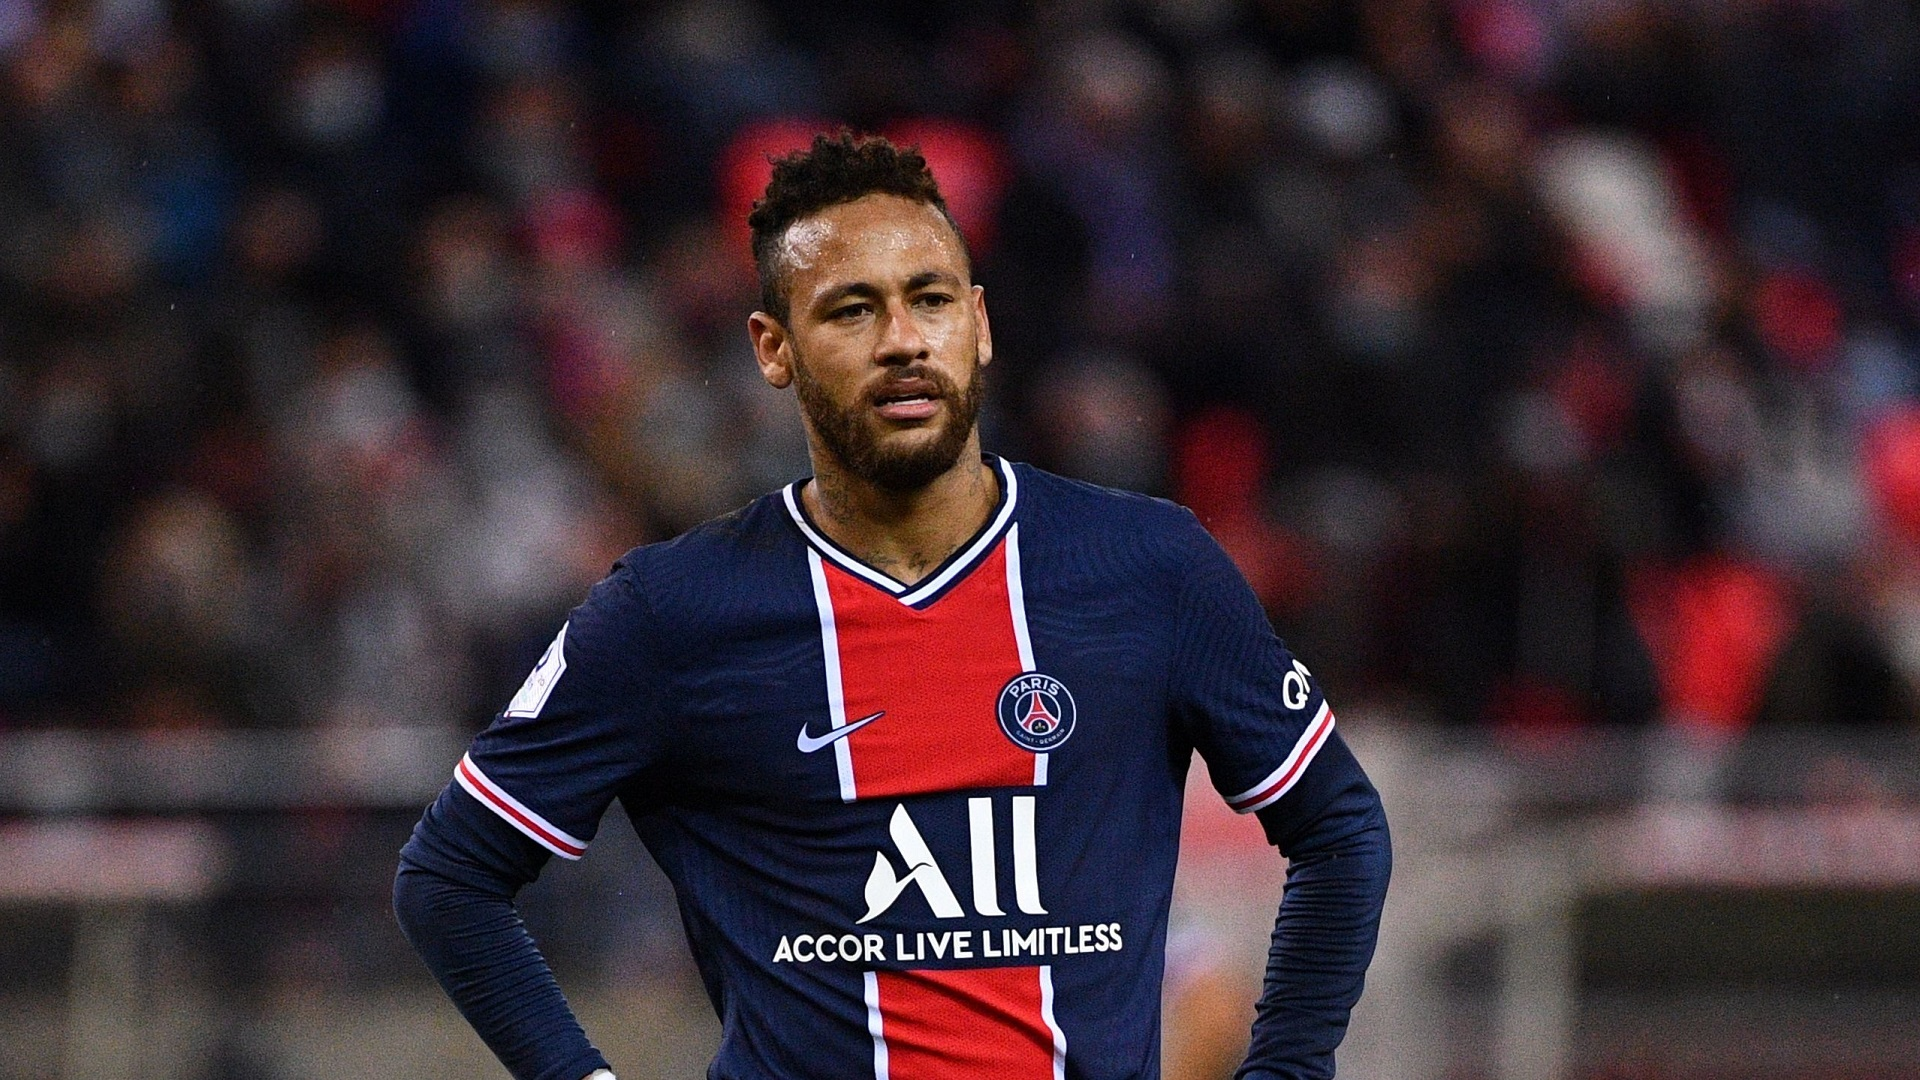 Neymar injury concern for PSG as Tuchel says he 'needs to speak with doctors' following Reims win